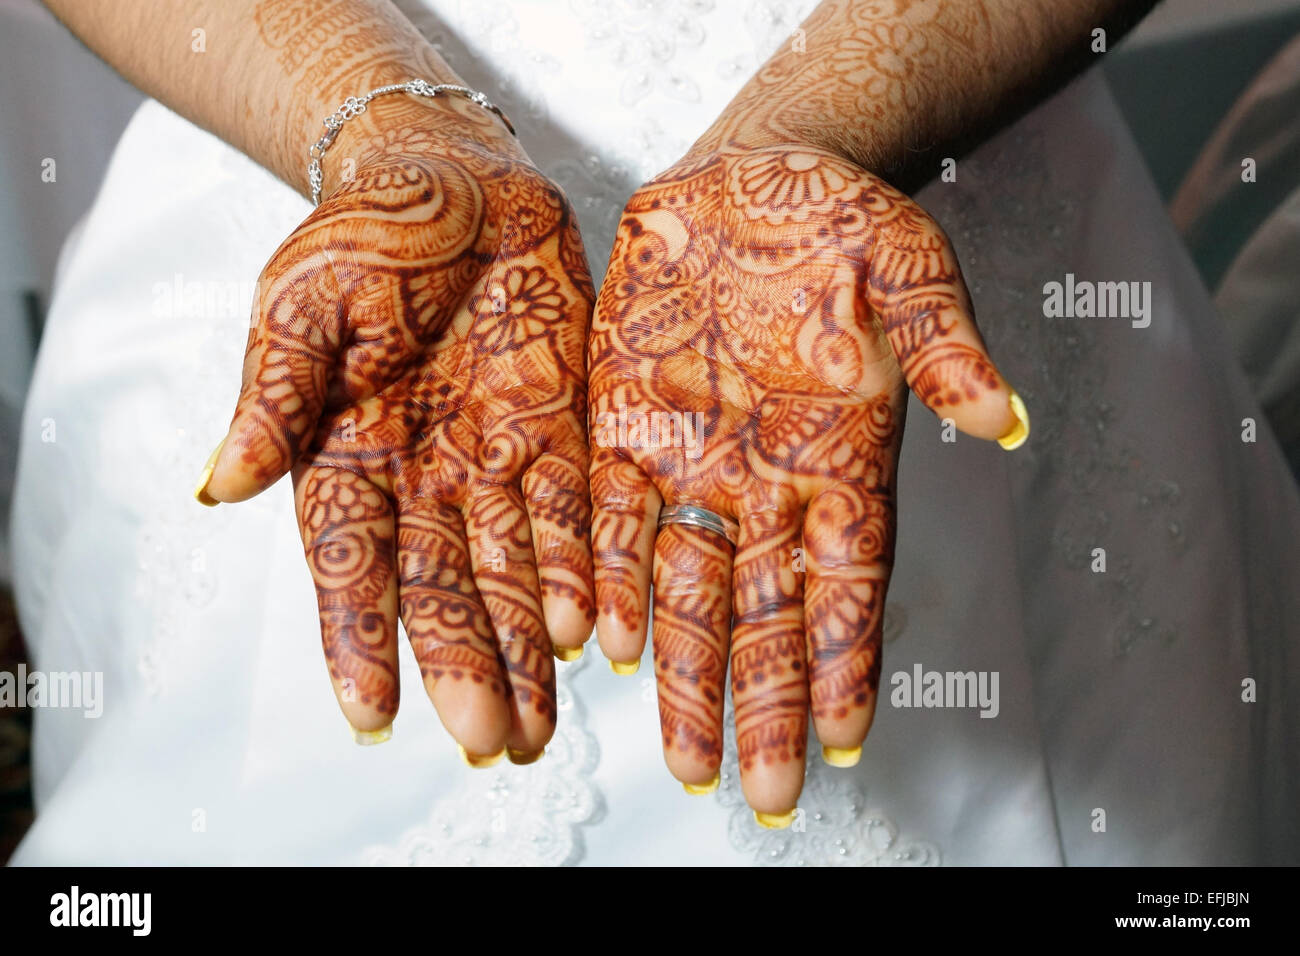 Henna Or Mehndi : Henna or mehndi designs on bride s hands stock photo  alamy